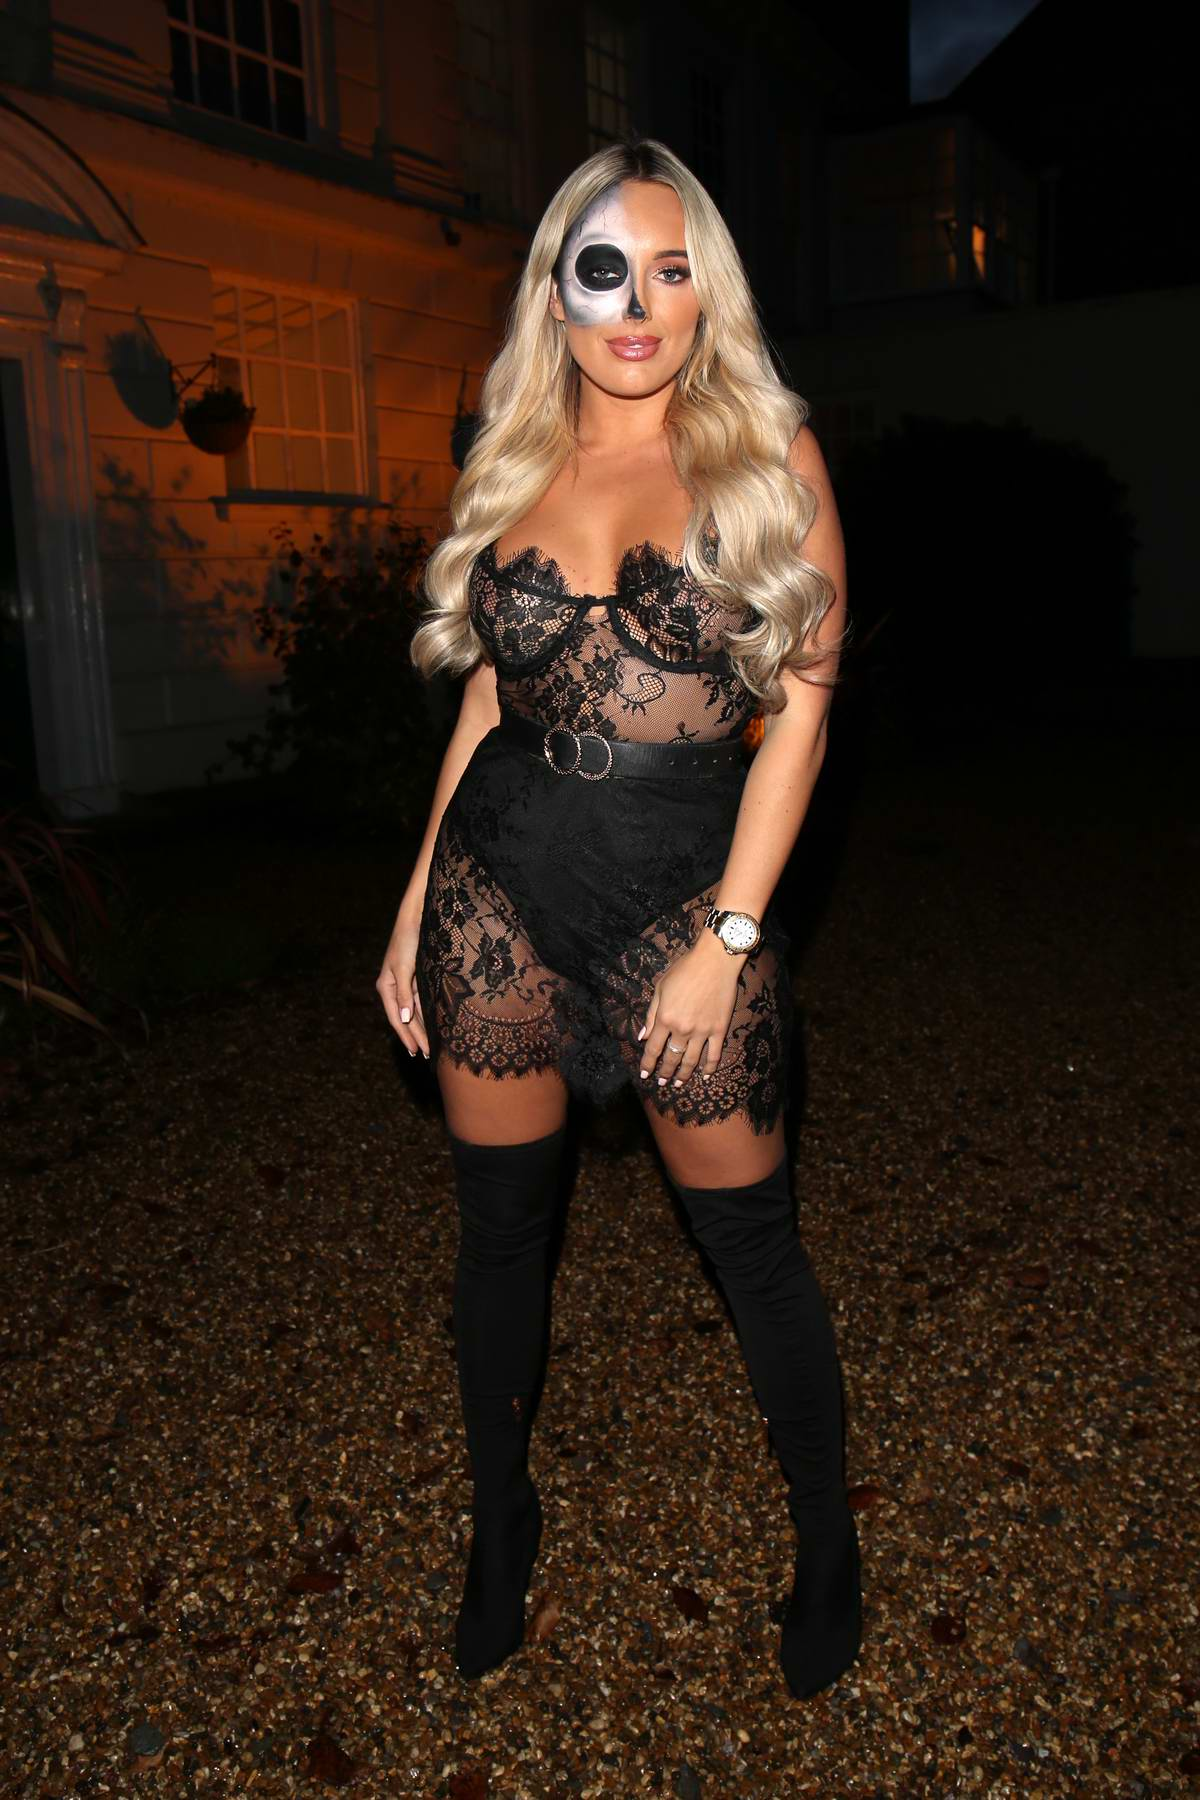 Amber Turner seen wearing a black sheer outfit while filming of 'The Only Way is Essex' Halloween Special TV show in Essex, UK